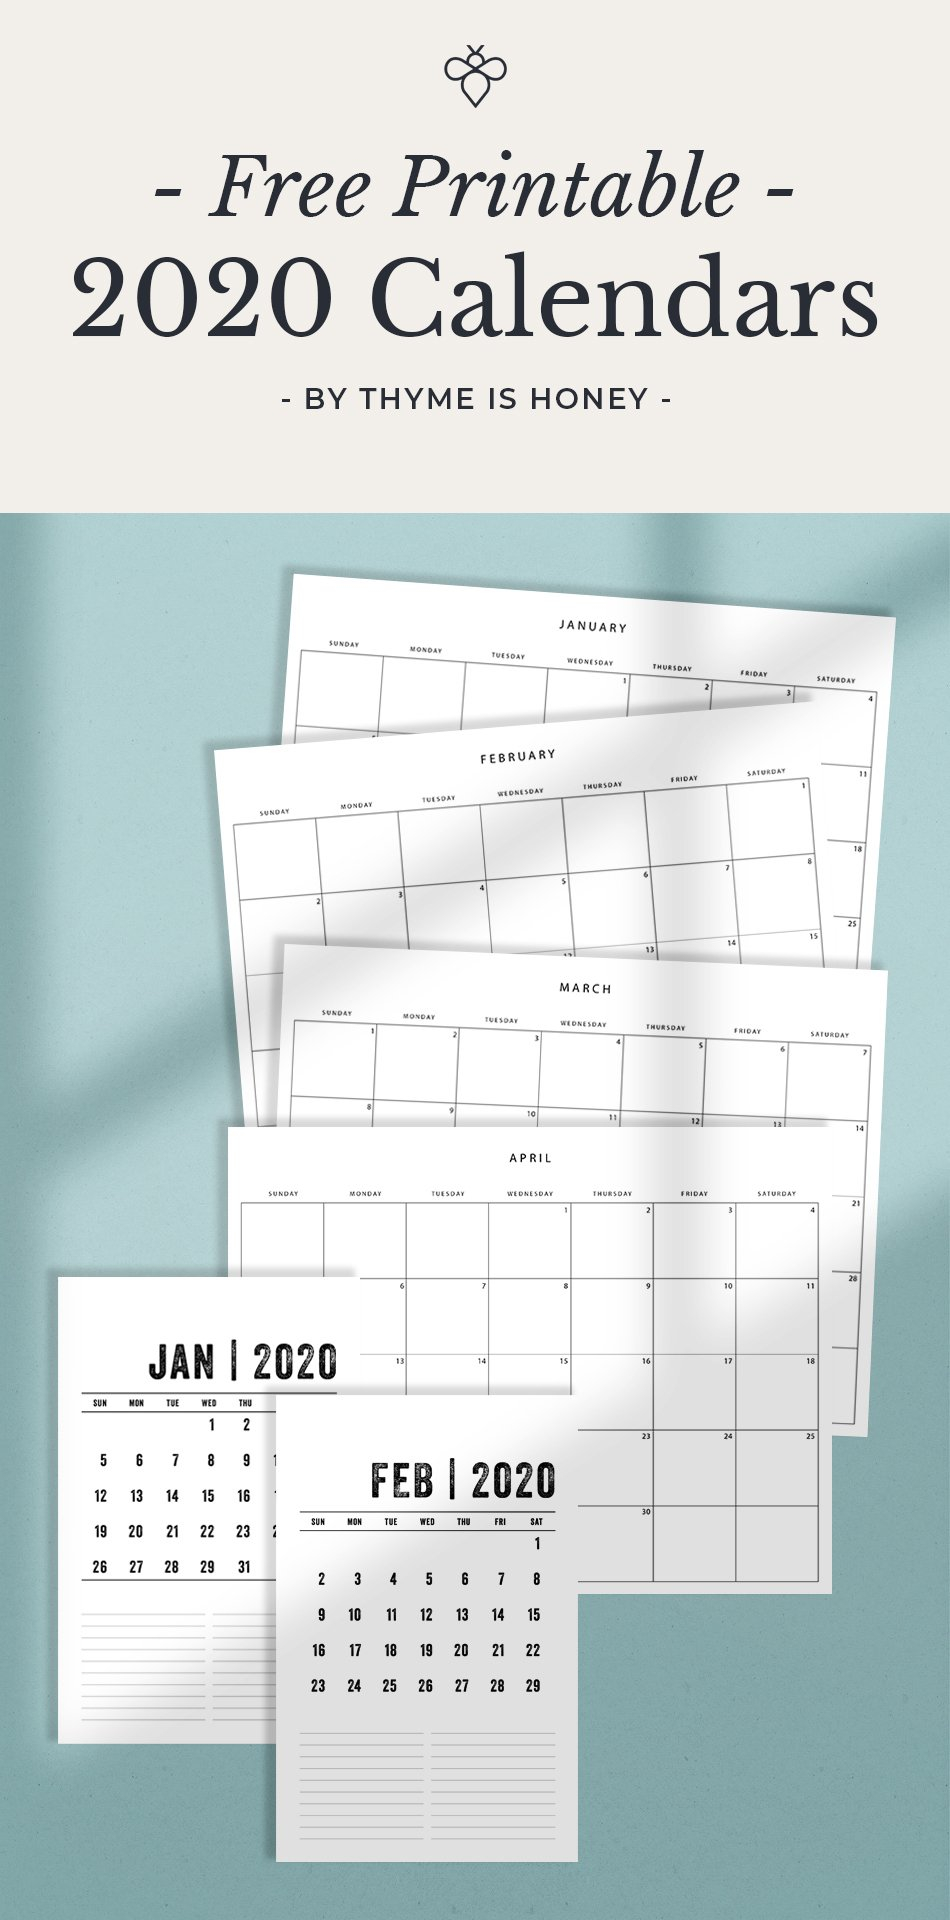 Free 2020 Calendars - Thyme Is Honey Printable 2 Page Per Month 5.5 X 8.5 Calendar 2020